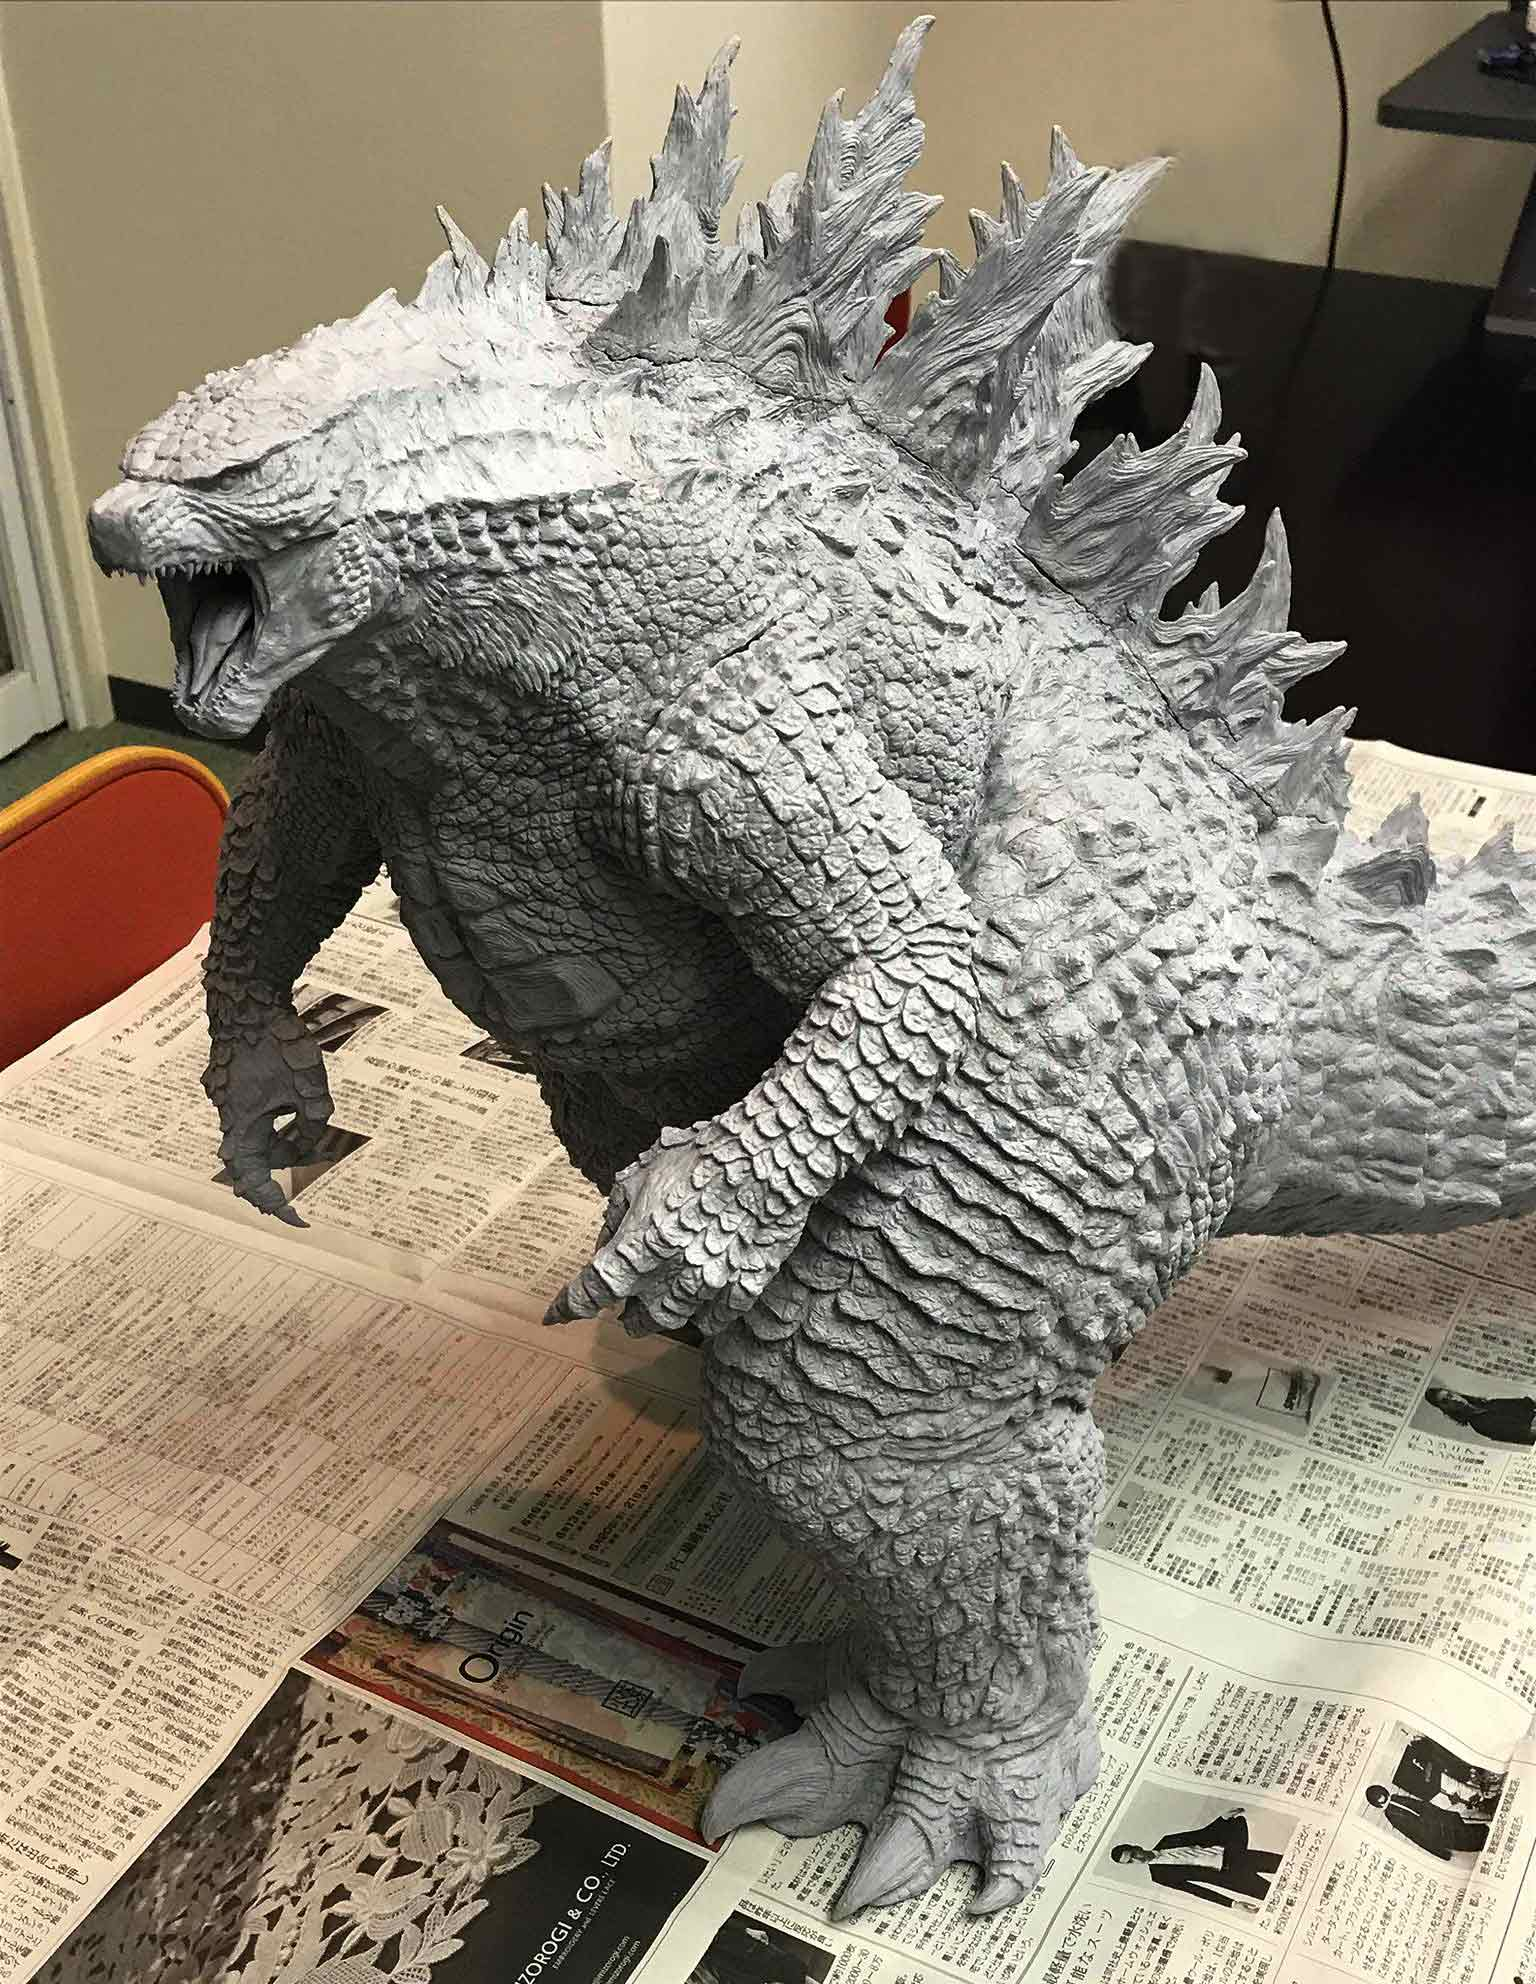 Higher resolution shot of the unpainted X-Plus Godzilla 2019 prototype.